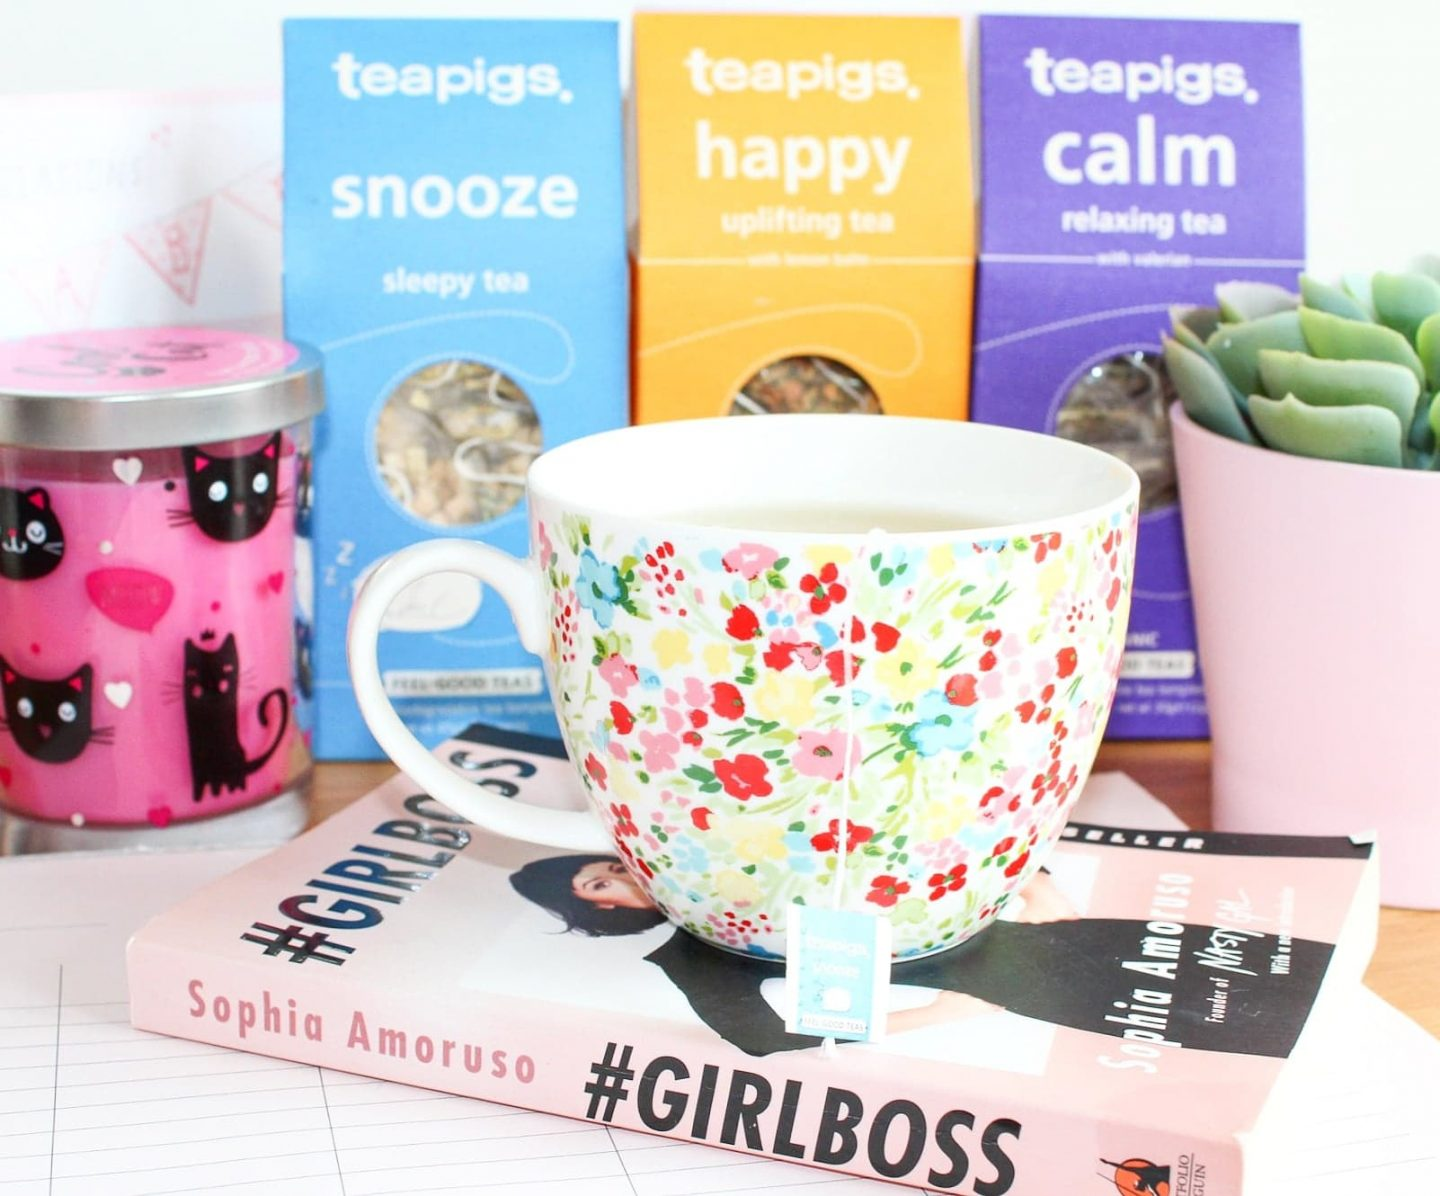 Postpartum Self-Care with teapigs Feel Good Teas